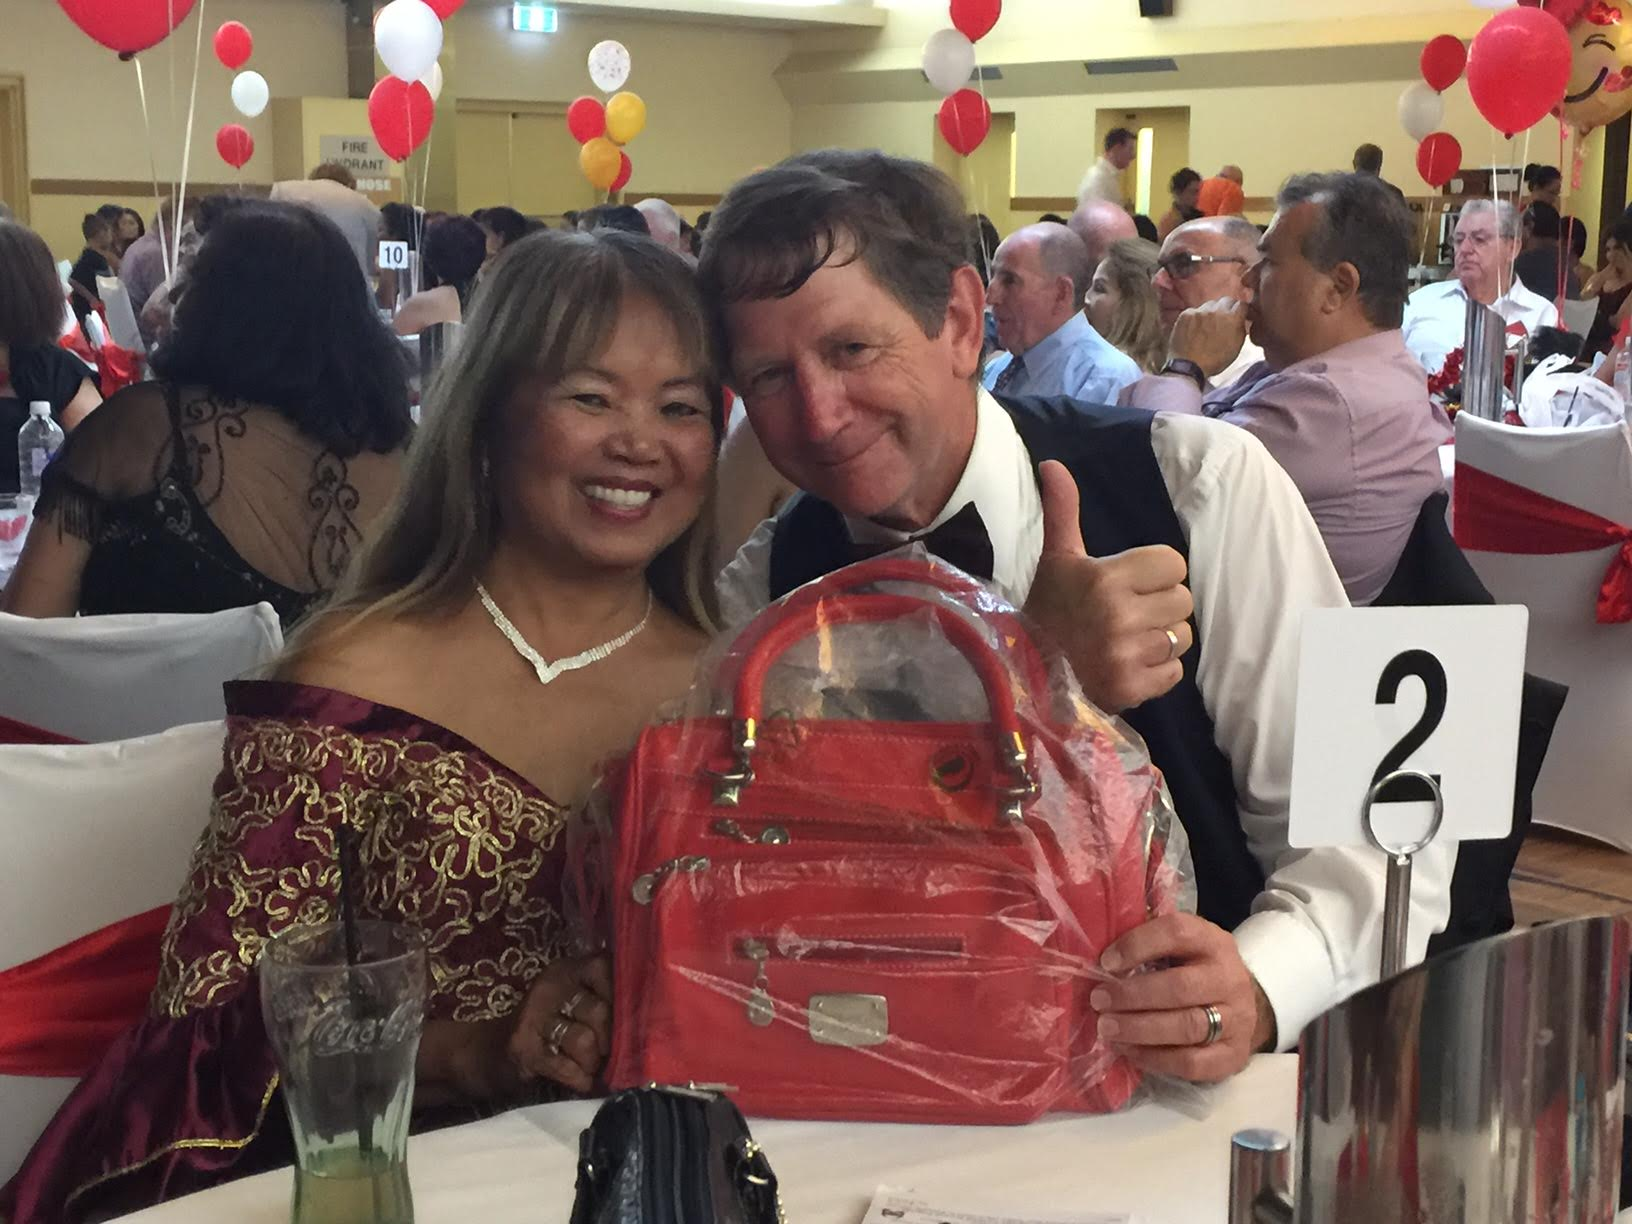 PCCNSW Secretary and AUSLUZON Chairperson Darrell Swadling won in IFMWG event raffle